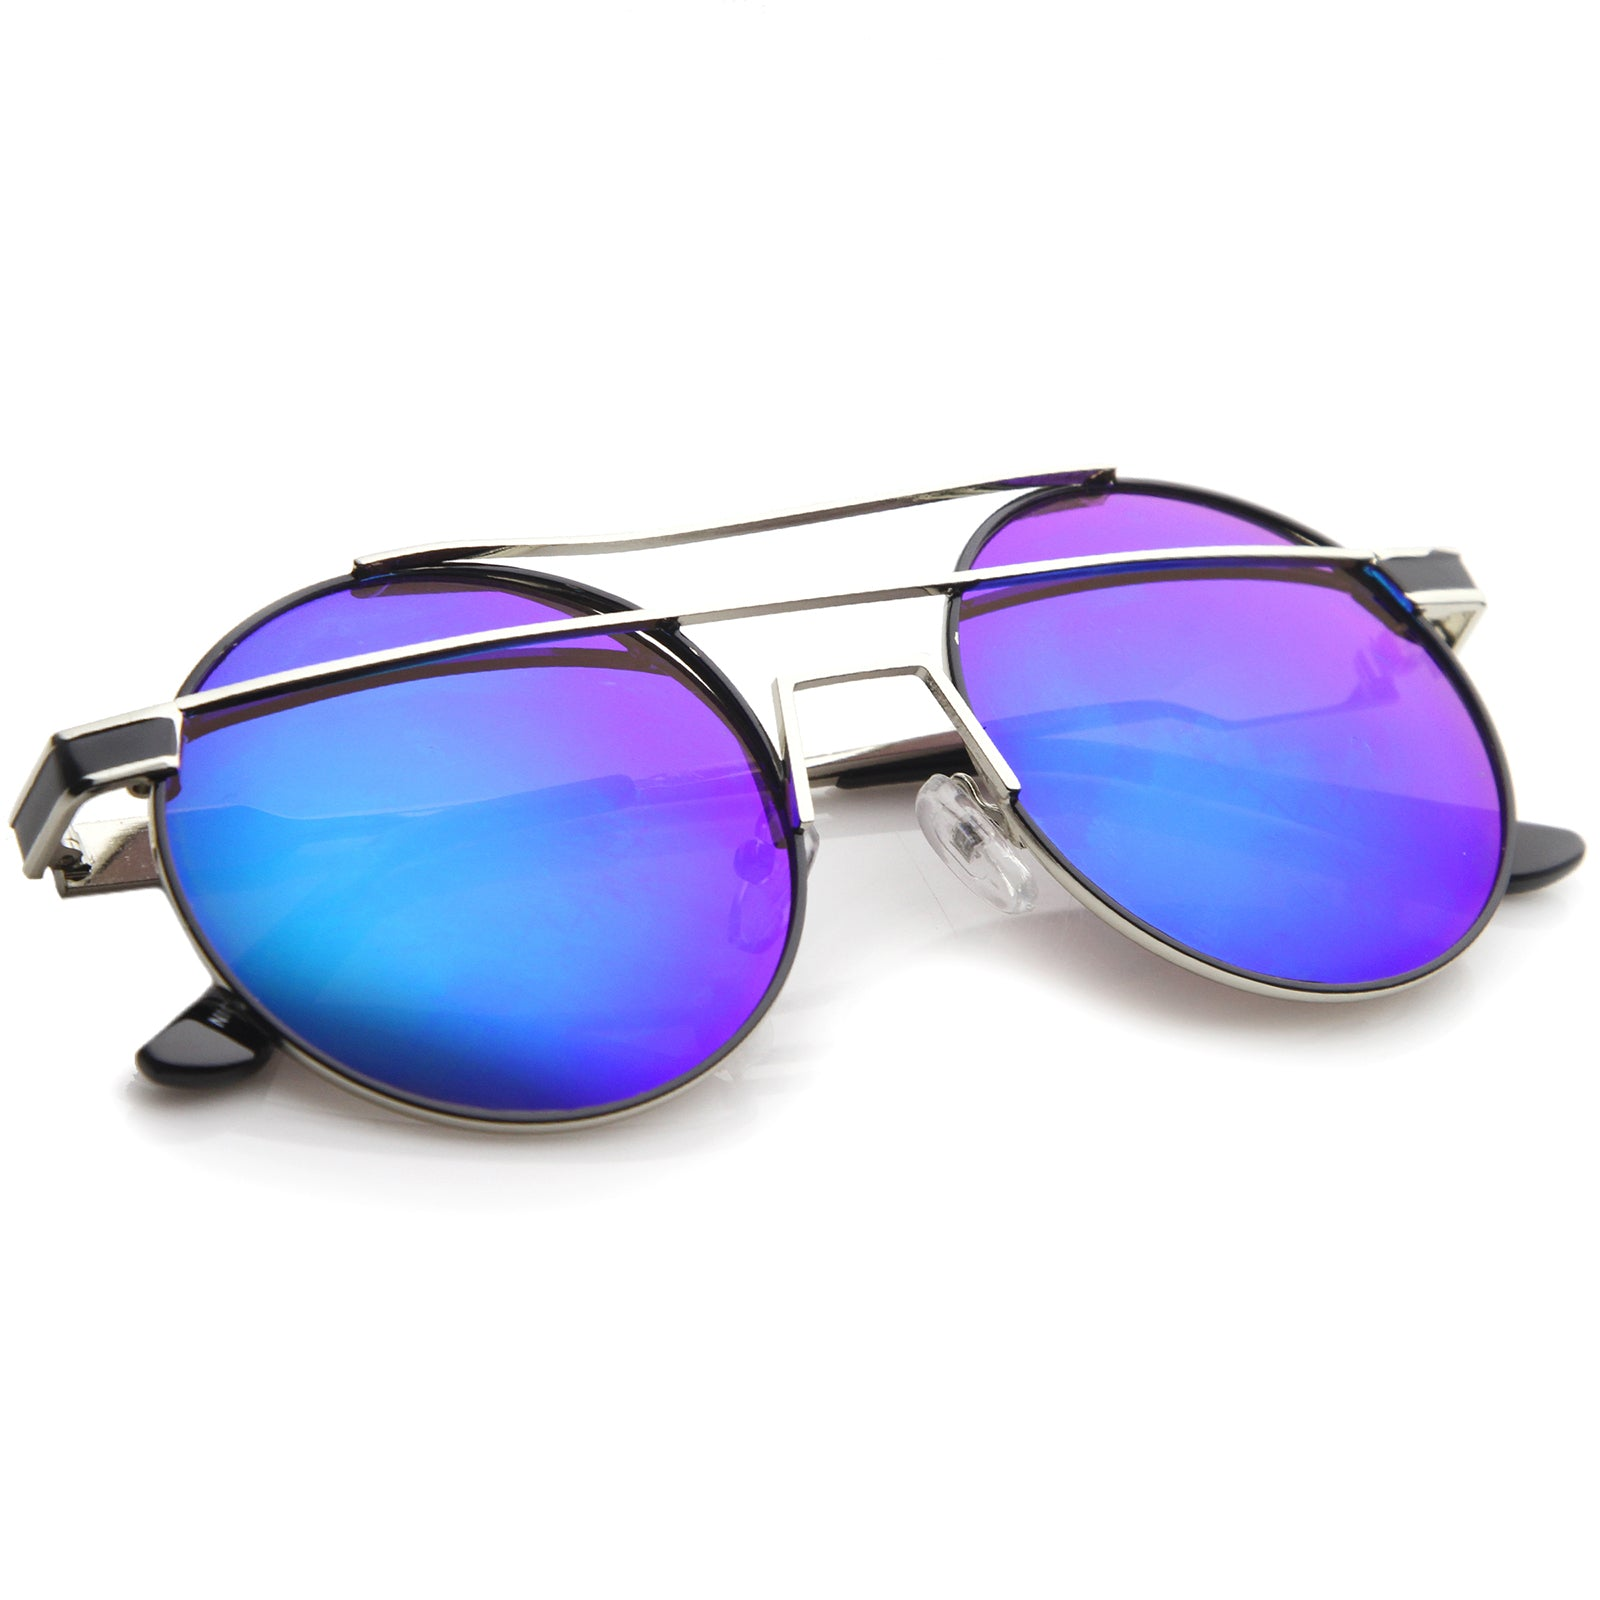 Modern Metal Frame Double Bridge Colored Mirror Lens Round Sunglasses 59mm - sunglass.la - 16